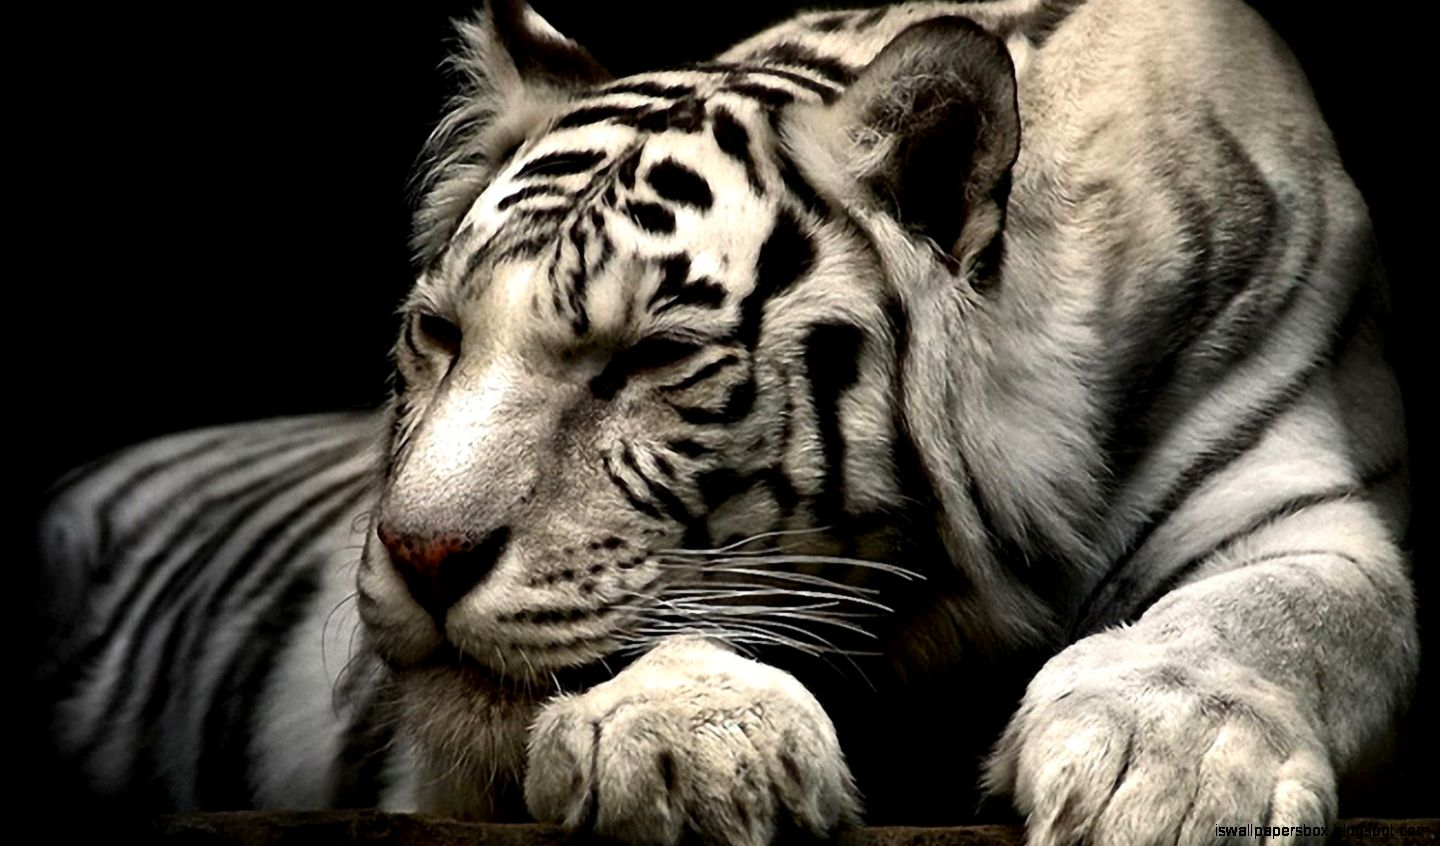 animal wallpaper best wallpapers white tiger sleeping | wallpapers box